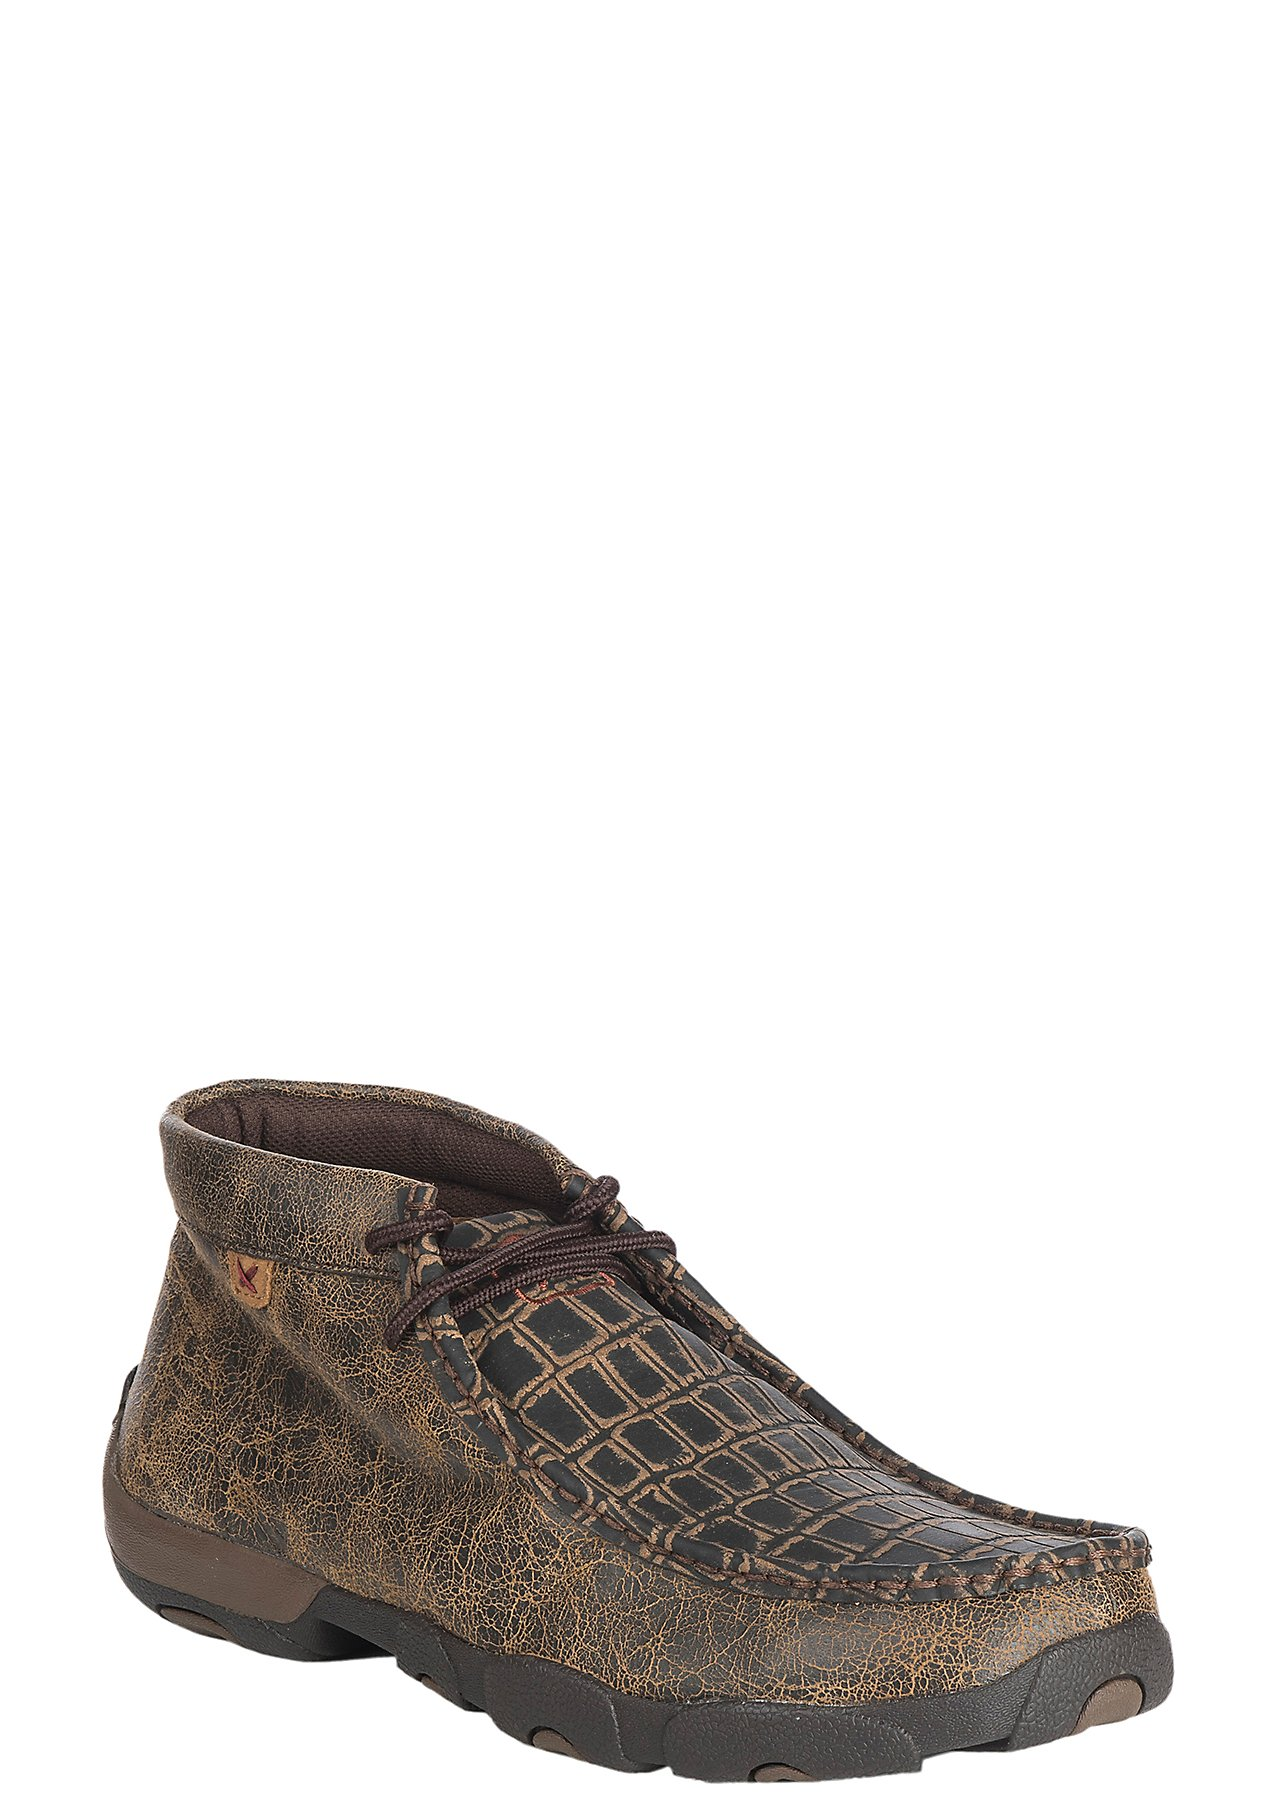 Twisted X Men's Brown w/ Caiman Print Driving Moccasin Casual Shoe